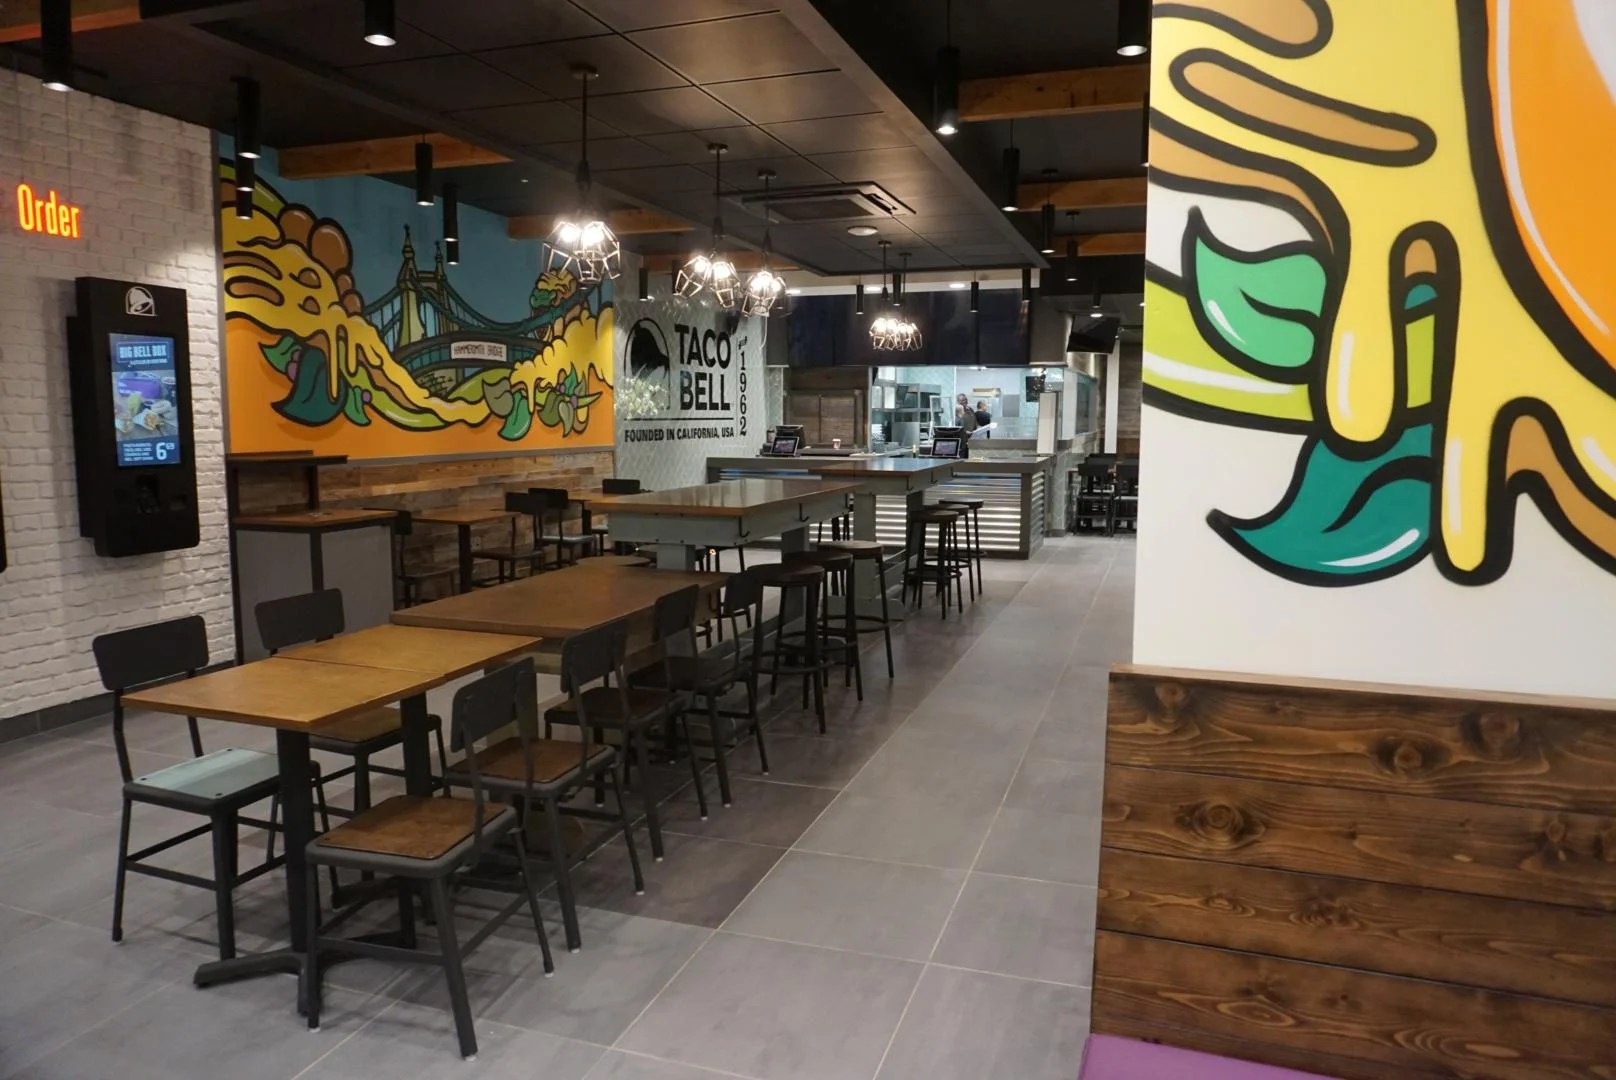 Premier Fitness Taco Bell London: A First Look At The Hammersmith